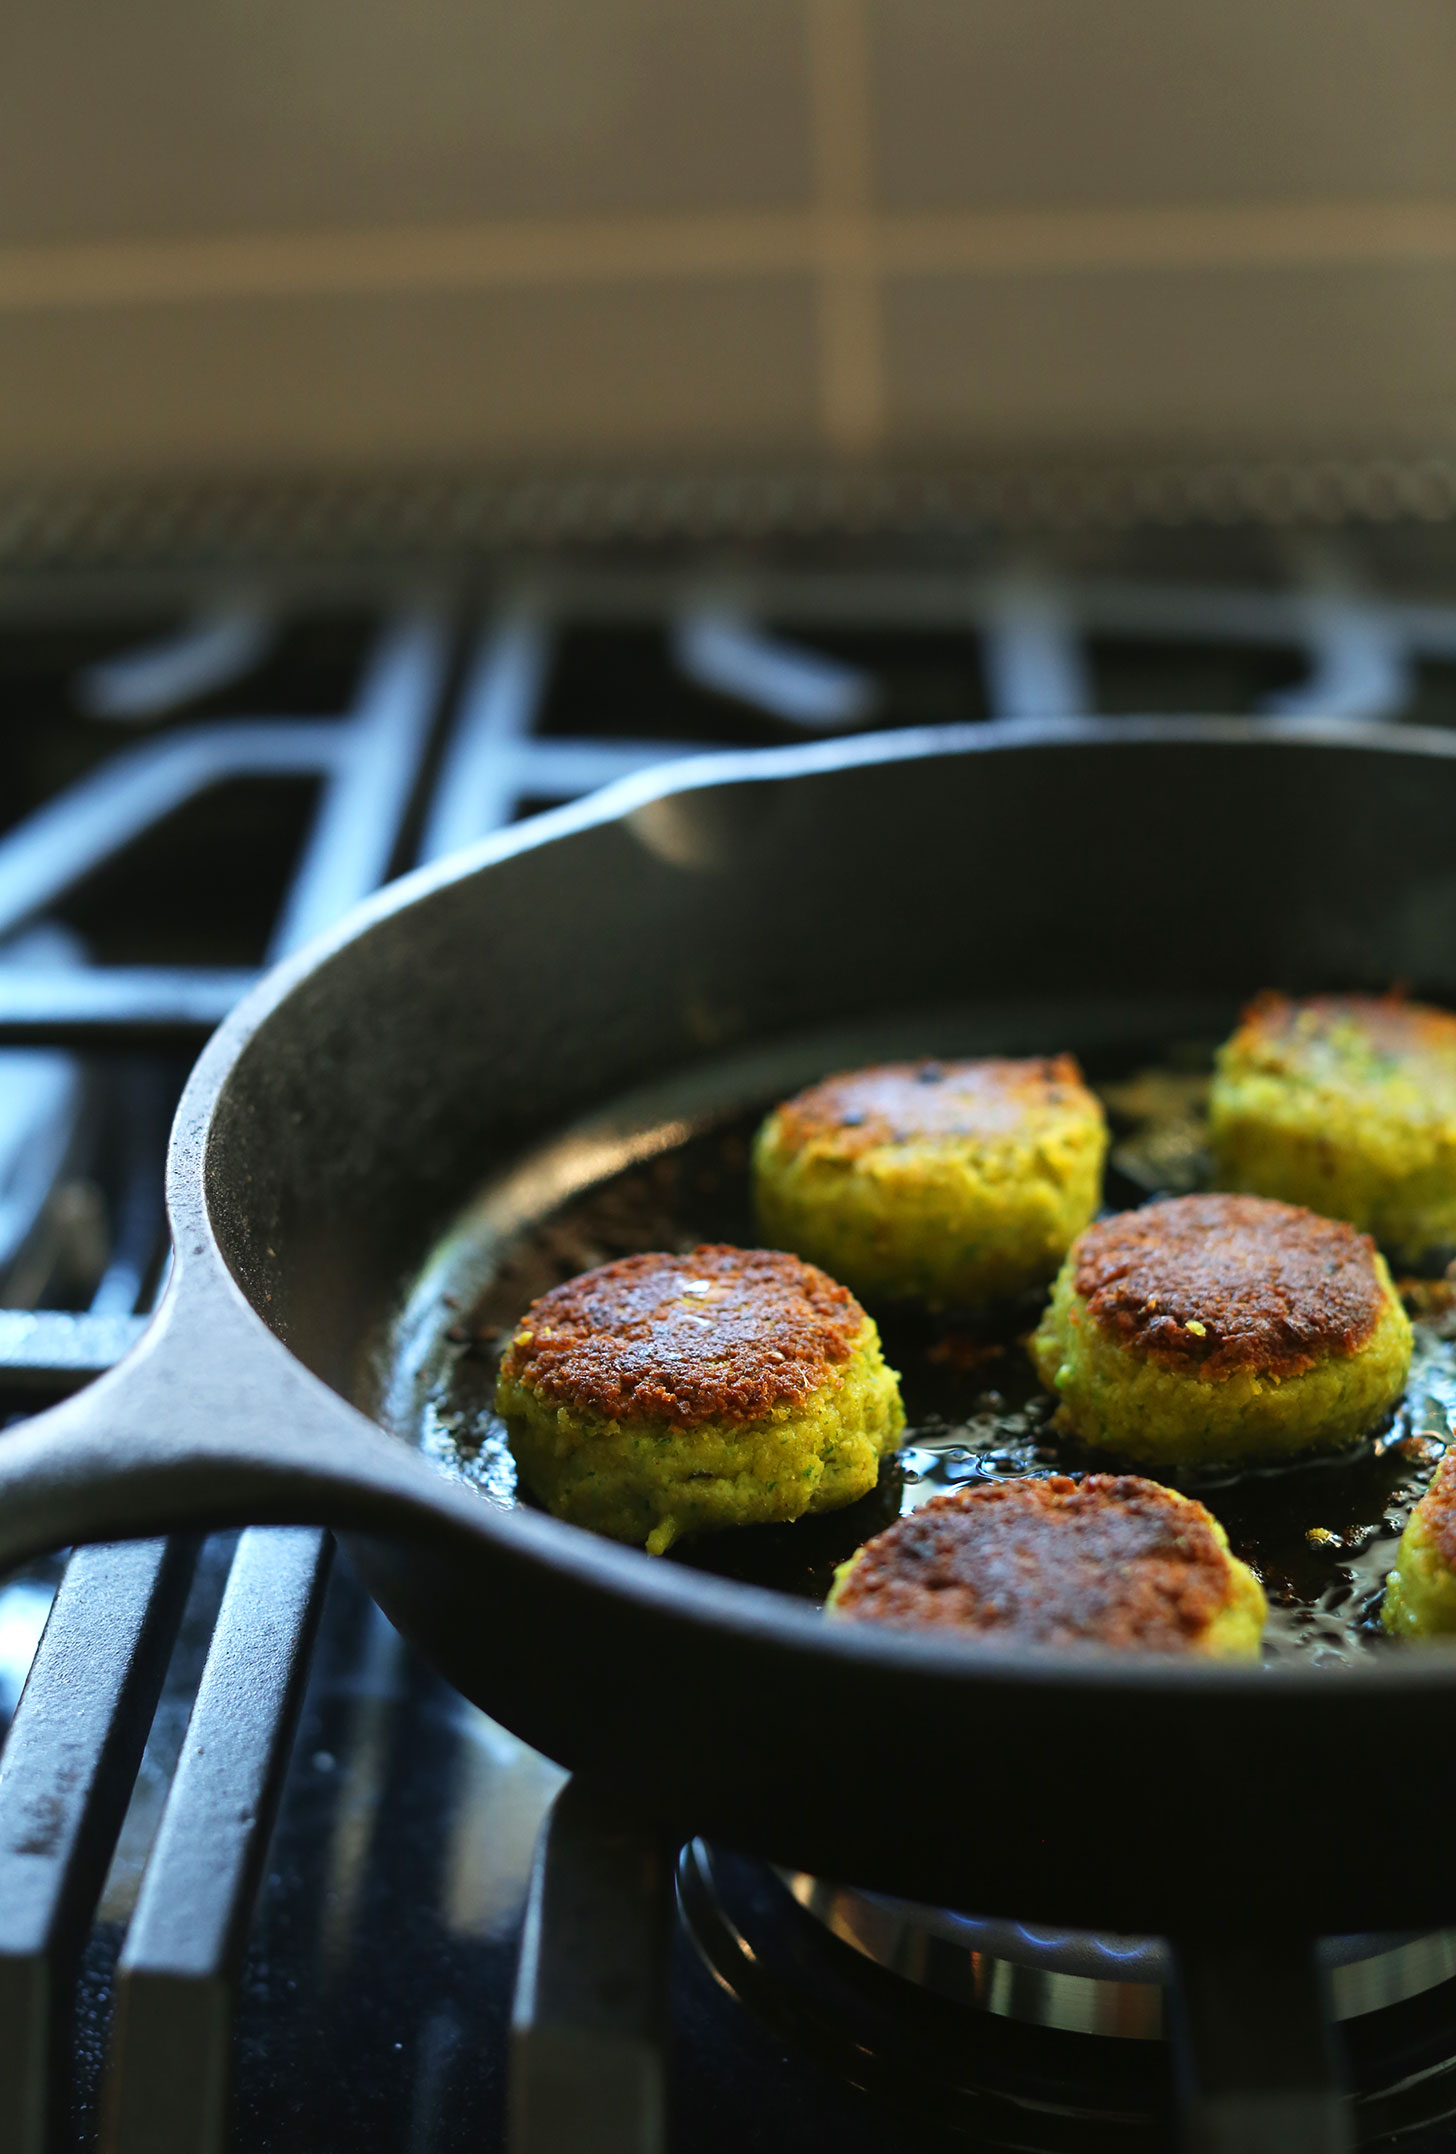 Cooking vegan falafel in a cast-iron skillet for Mediterranean Bowls